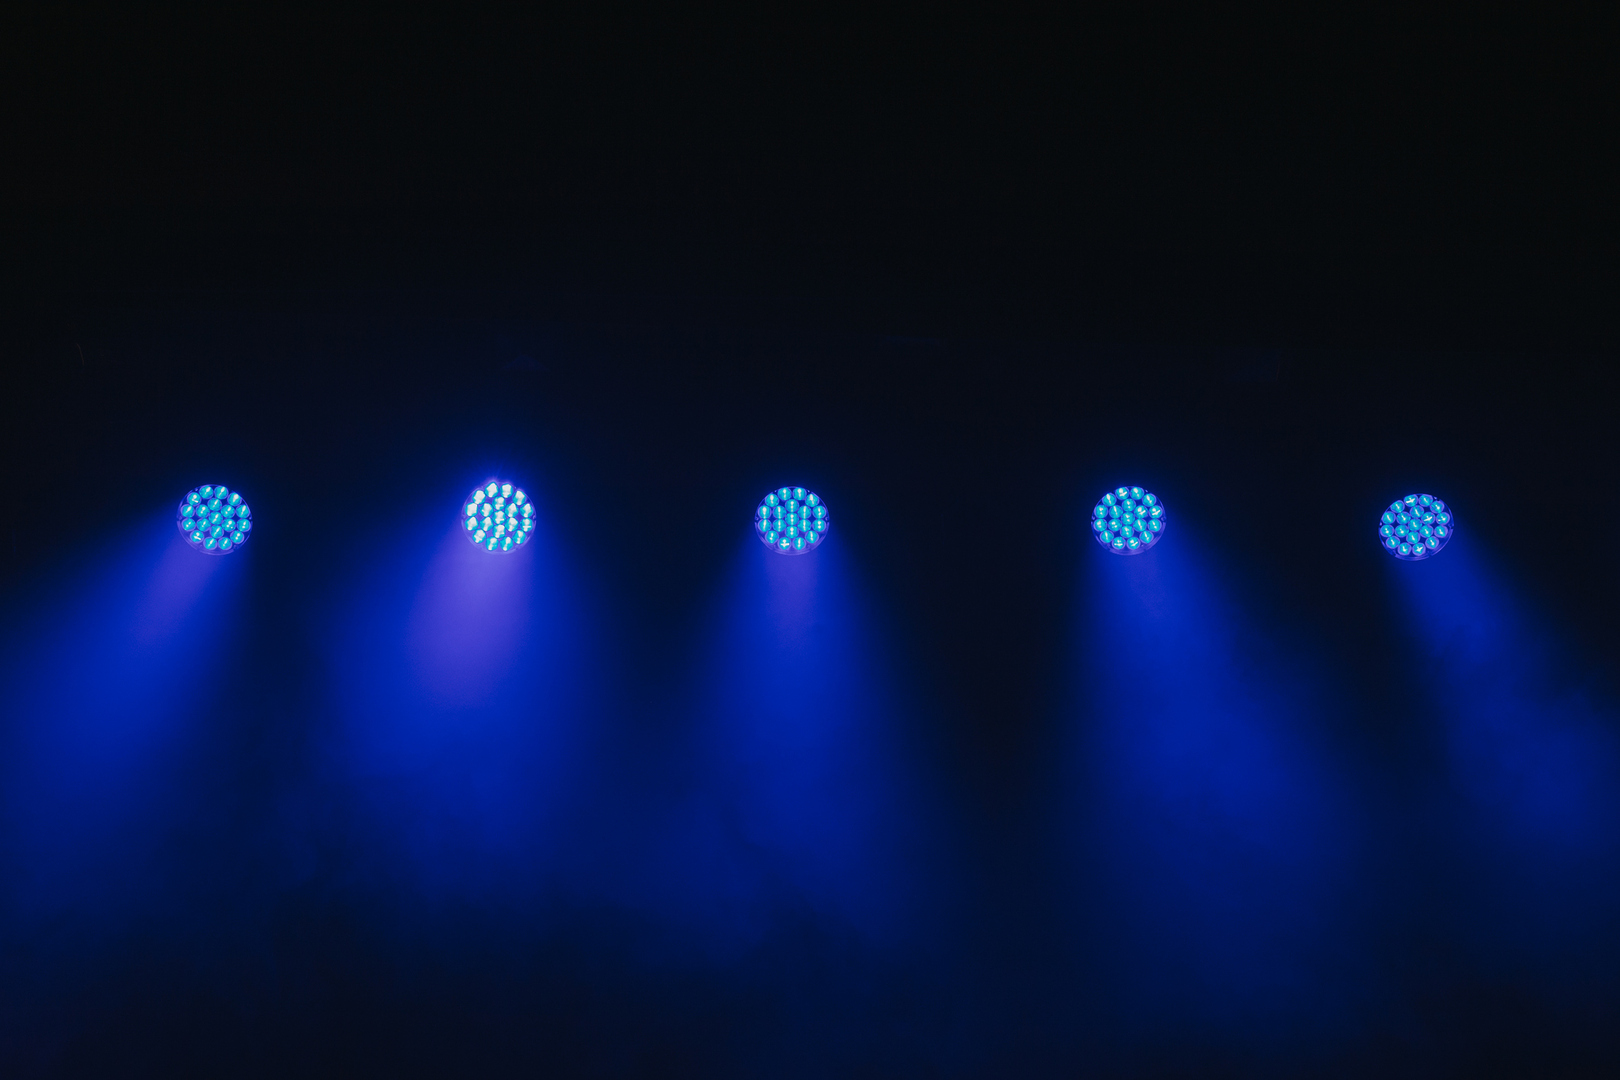 Blue light causes negative physiological changes during sleep